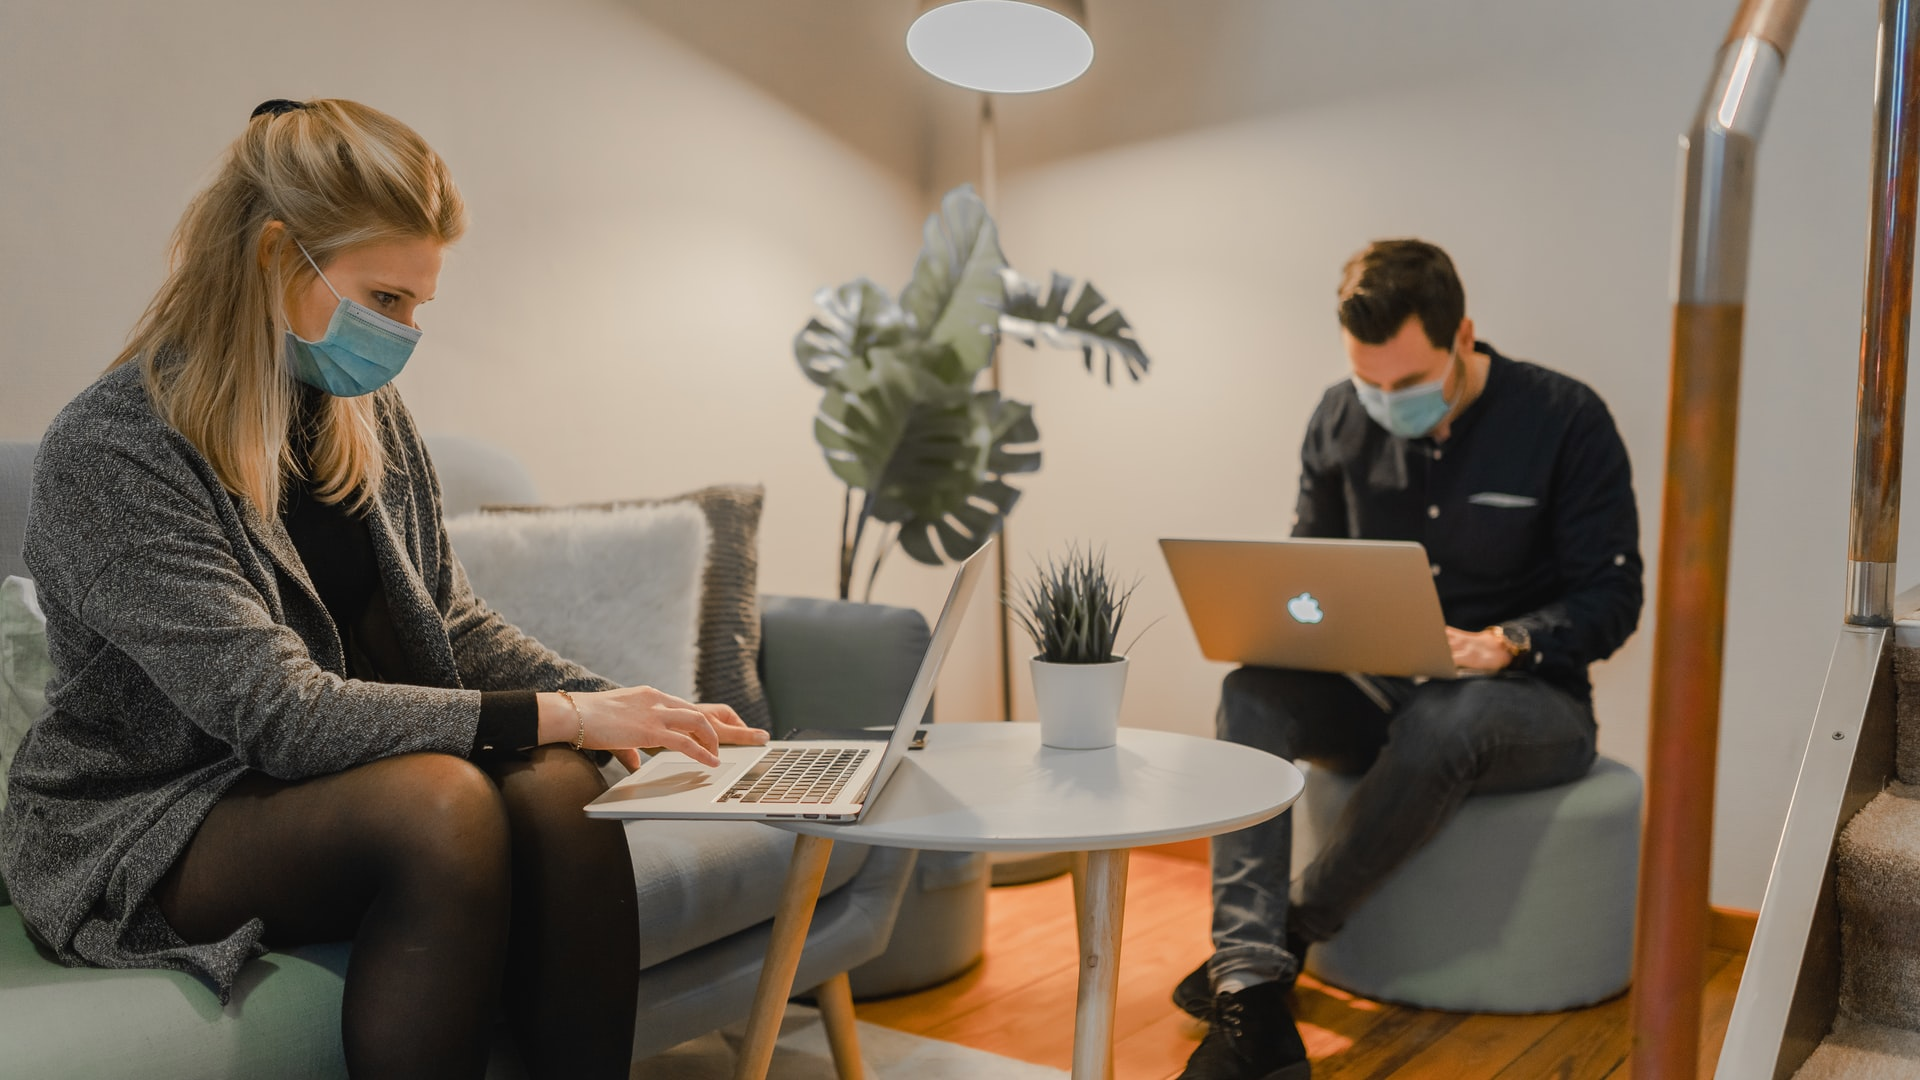 two people working on couch with laptops